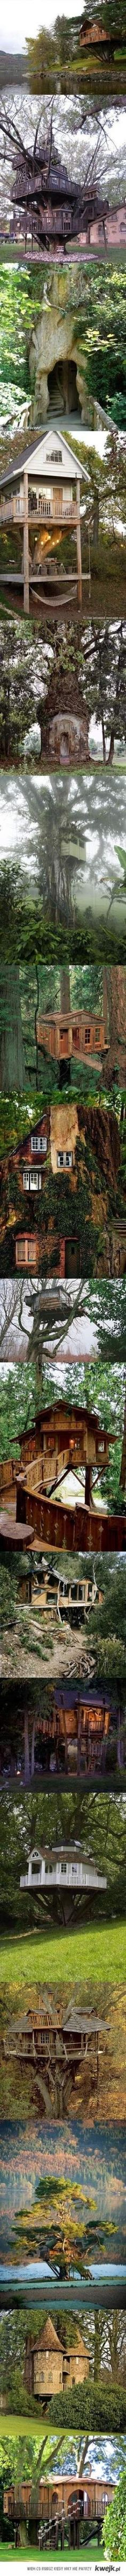 tree houses by Eli Lucilia